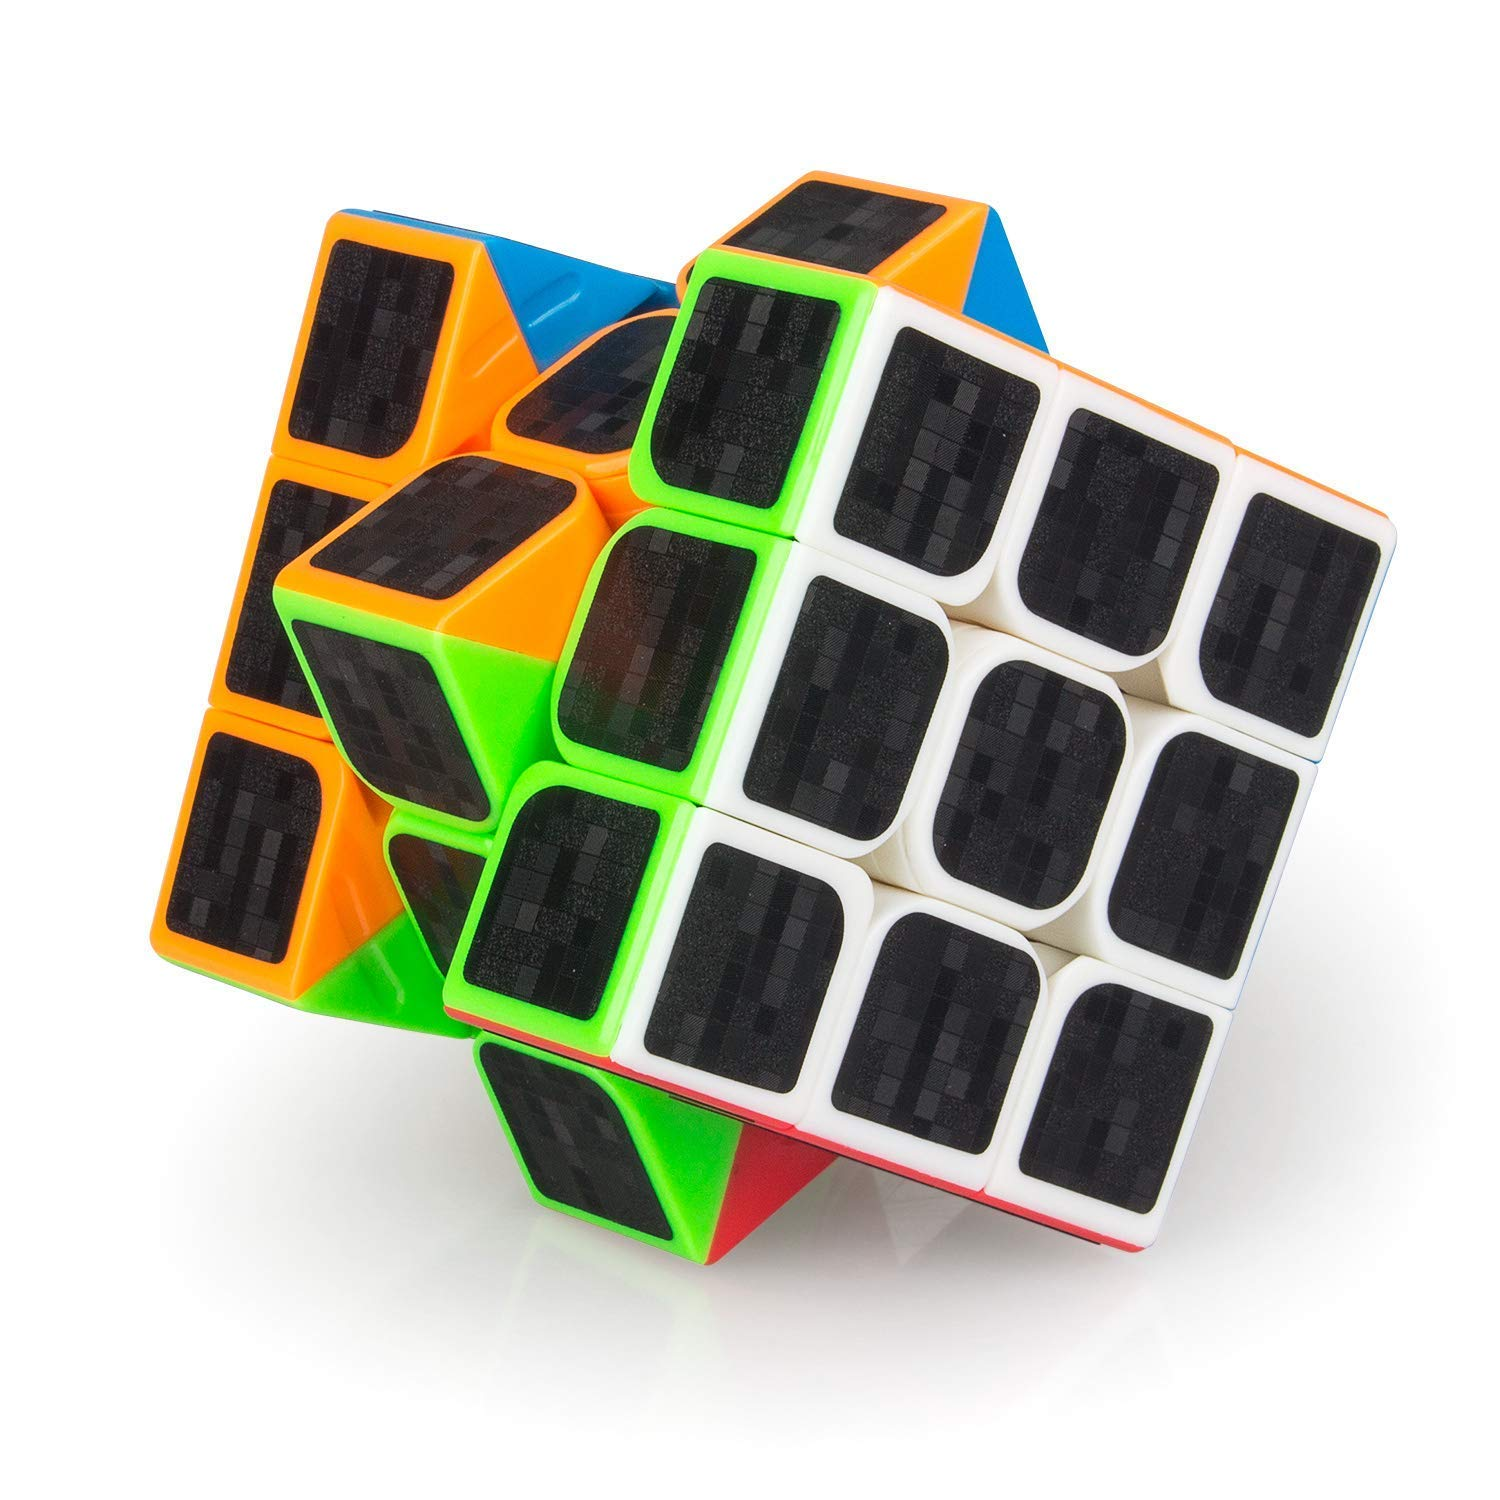 D.F.L Speed Cubes 3D Puzzles Magic Cube 3D Cube Set Rubix Cube Puzzle Cube Carbon Fiber Moyu Cube 2x2 3x3 Smooth Enhanced Version Gift for Kids and Adults by D.F.L (Image #3)